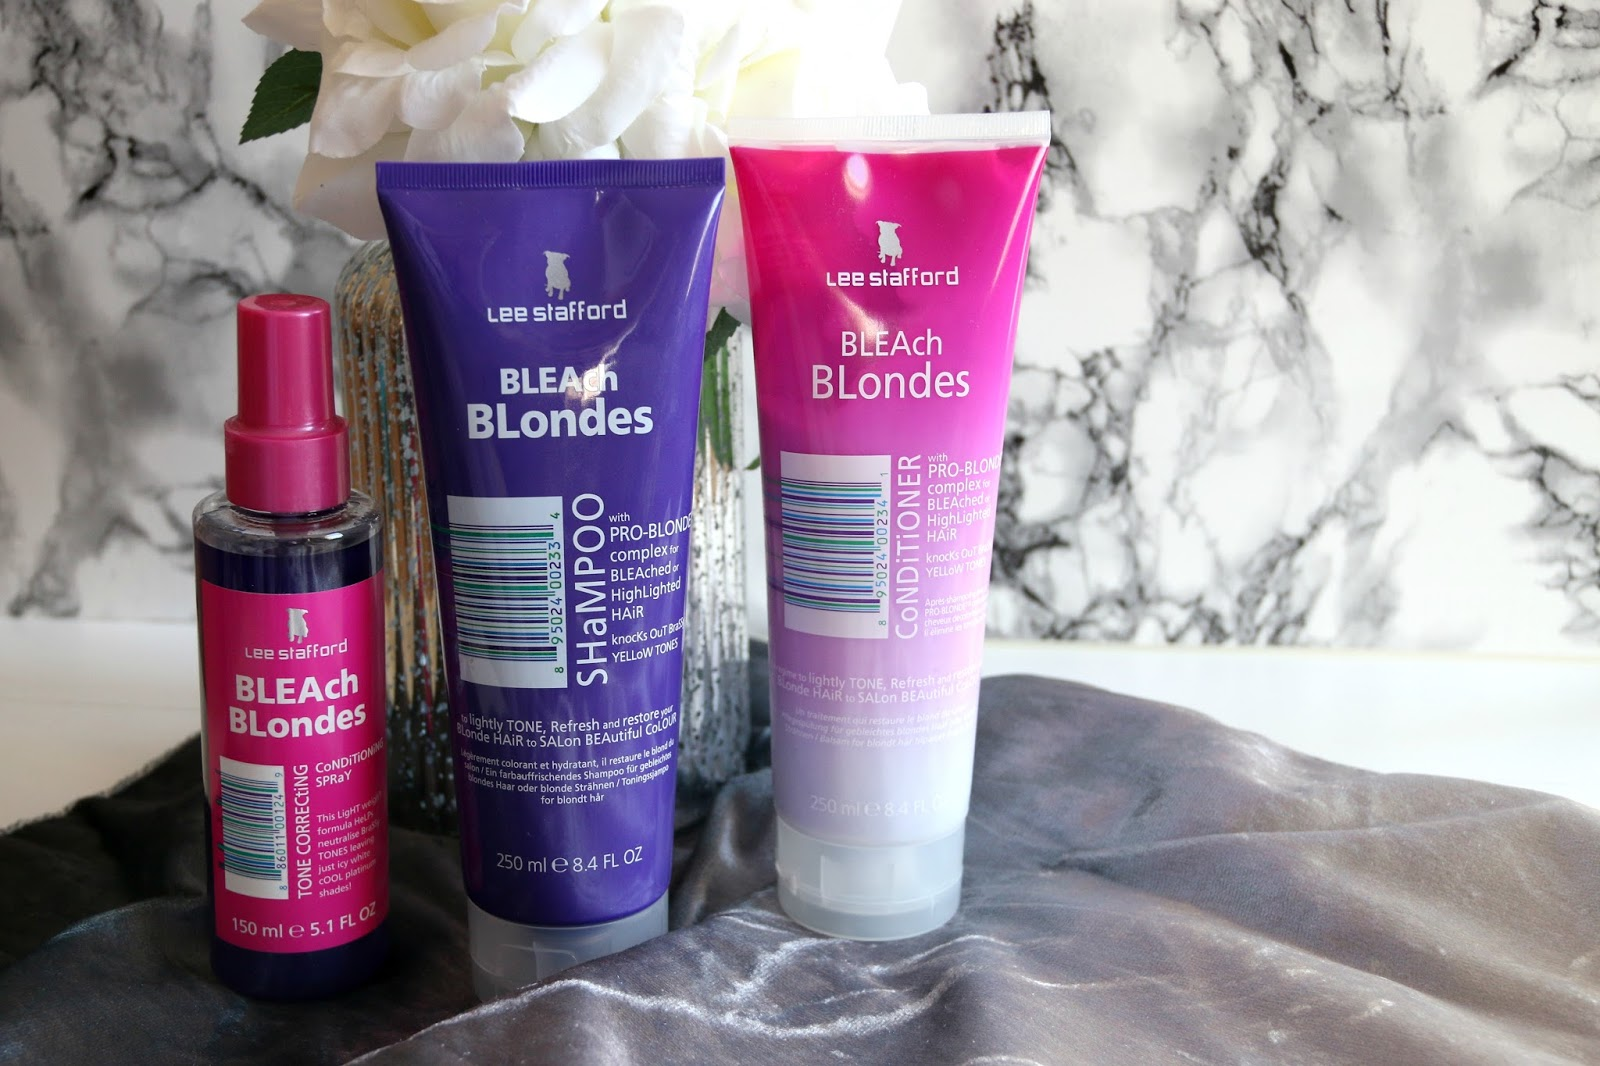 Lee Stafford Bleach BLEAch BLondes Hair Care Review WhatLauraLoves UK Beauty Blogger